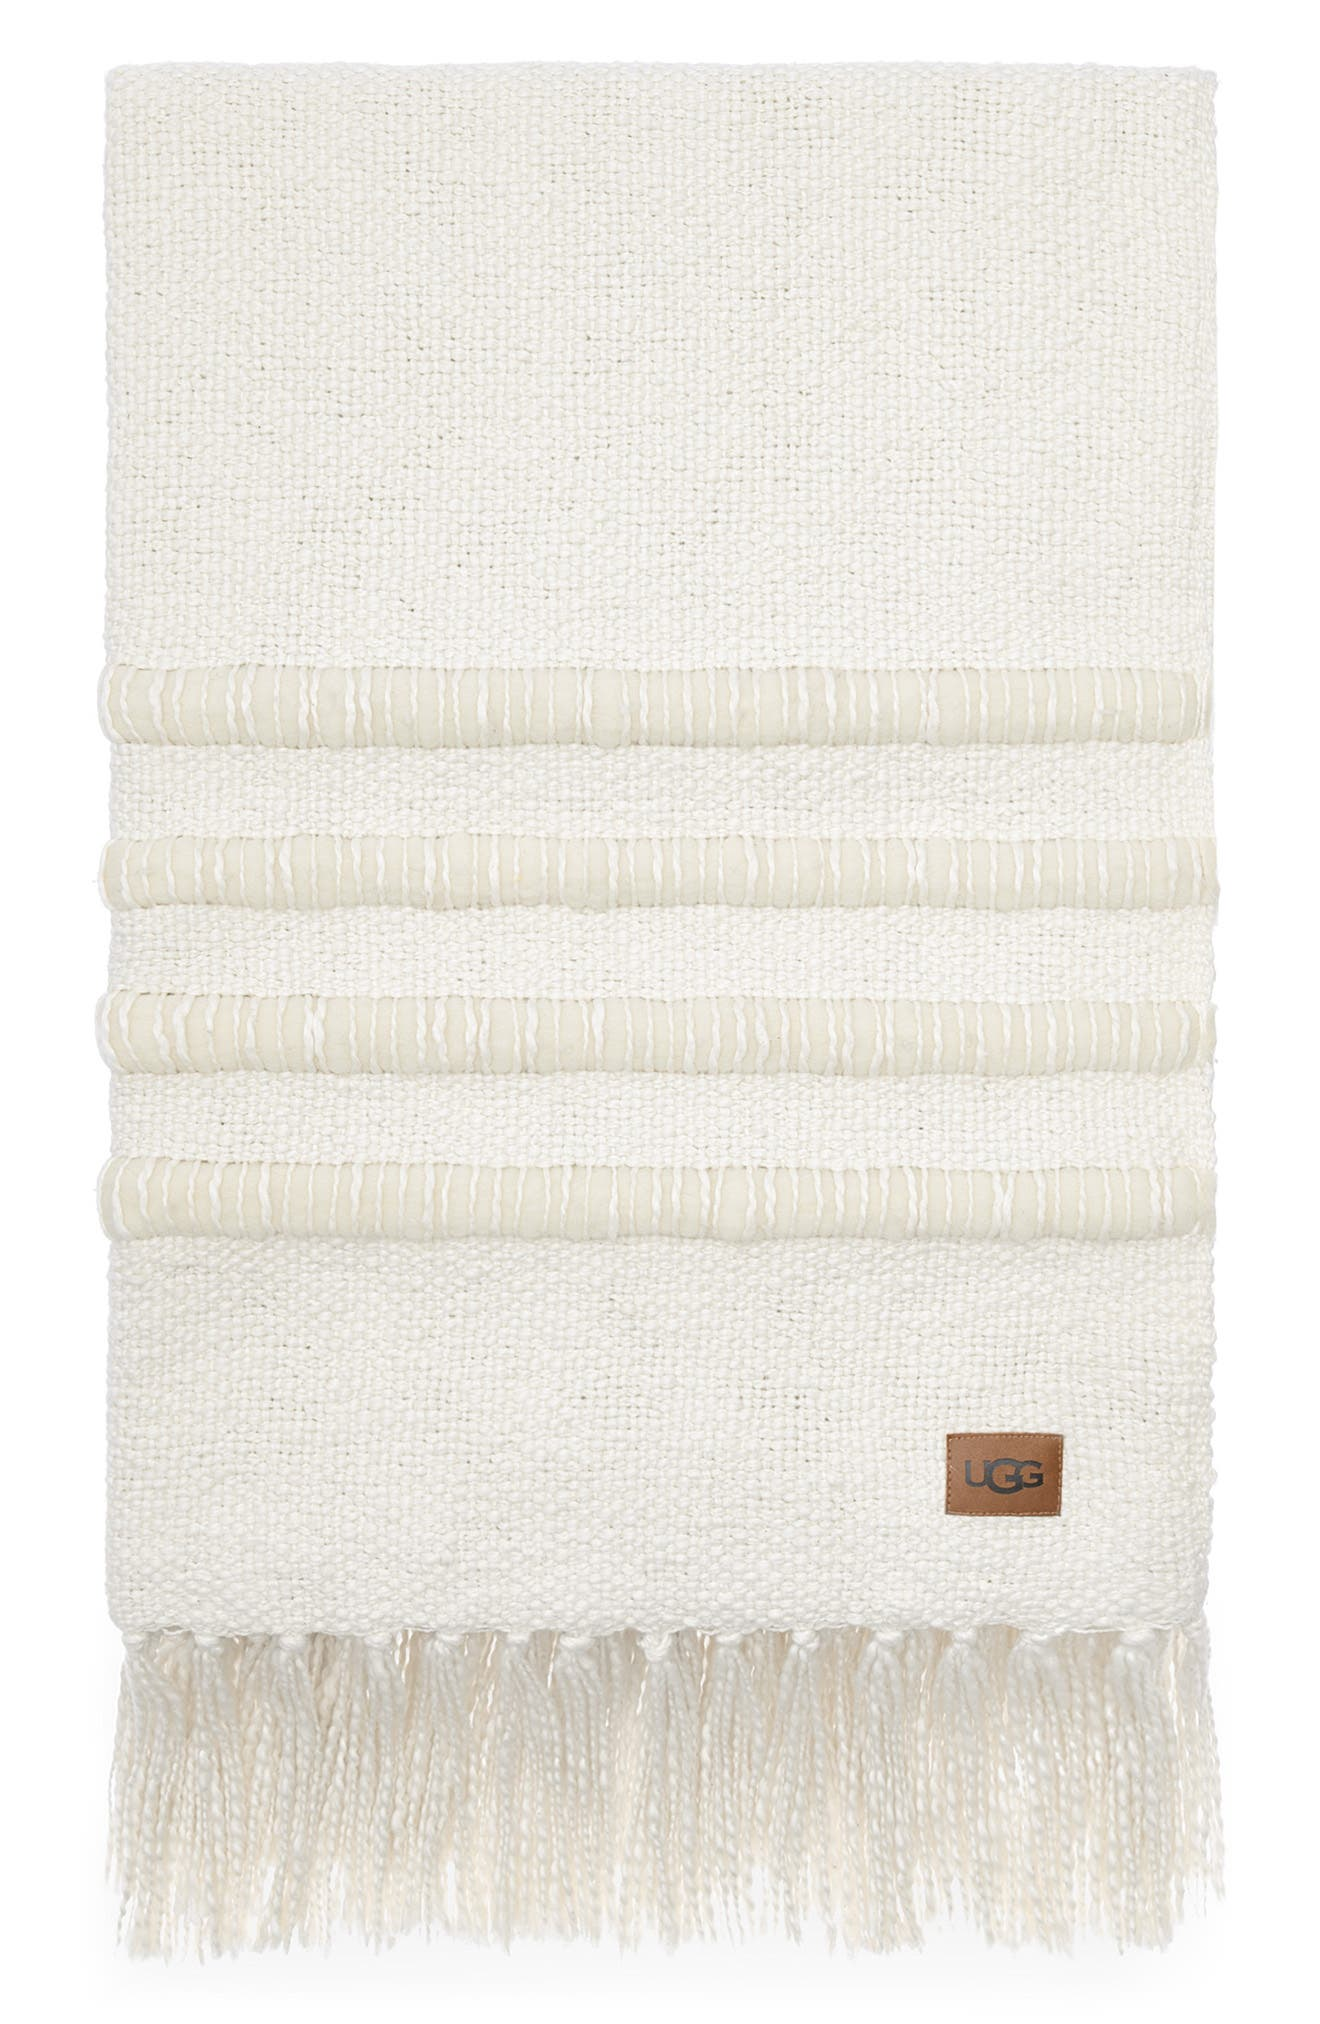 A luxurious cotton-and-wool throw finished with soft tassel trim brings plush comfort and warmth to any cozy couch session. Style Name: UGG Alicia Throw Blanket. Style Number: 6052090. Available in stores.